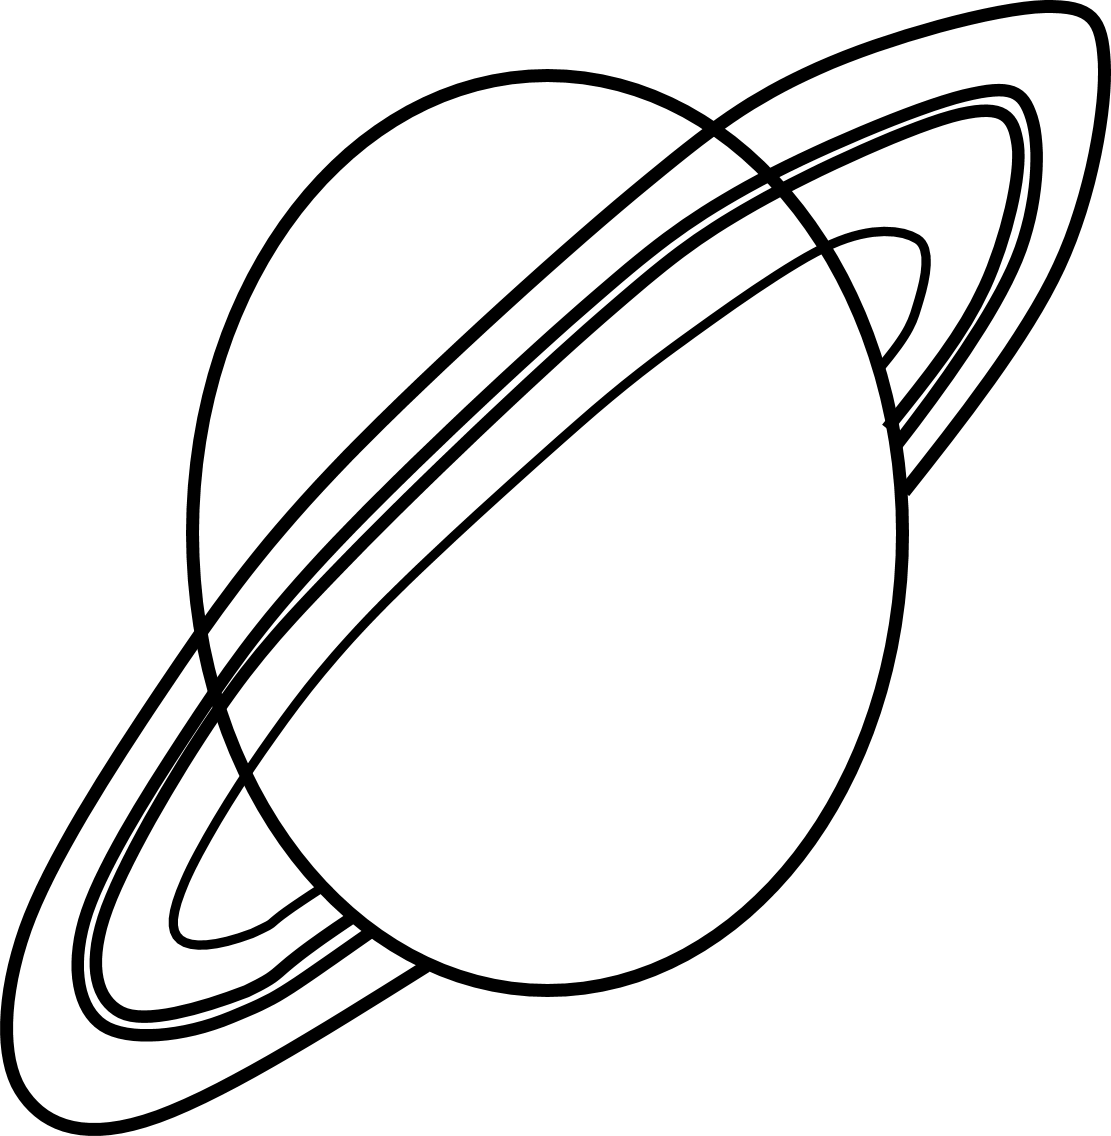 Printable Pictures Of Saturn